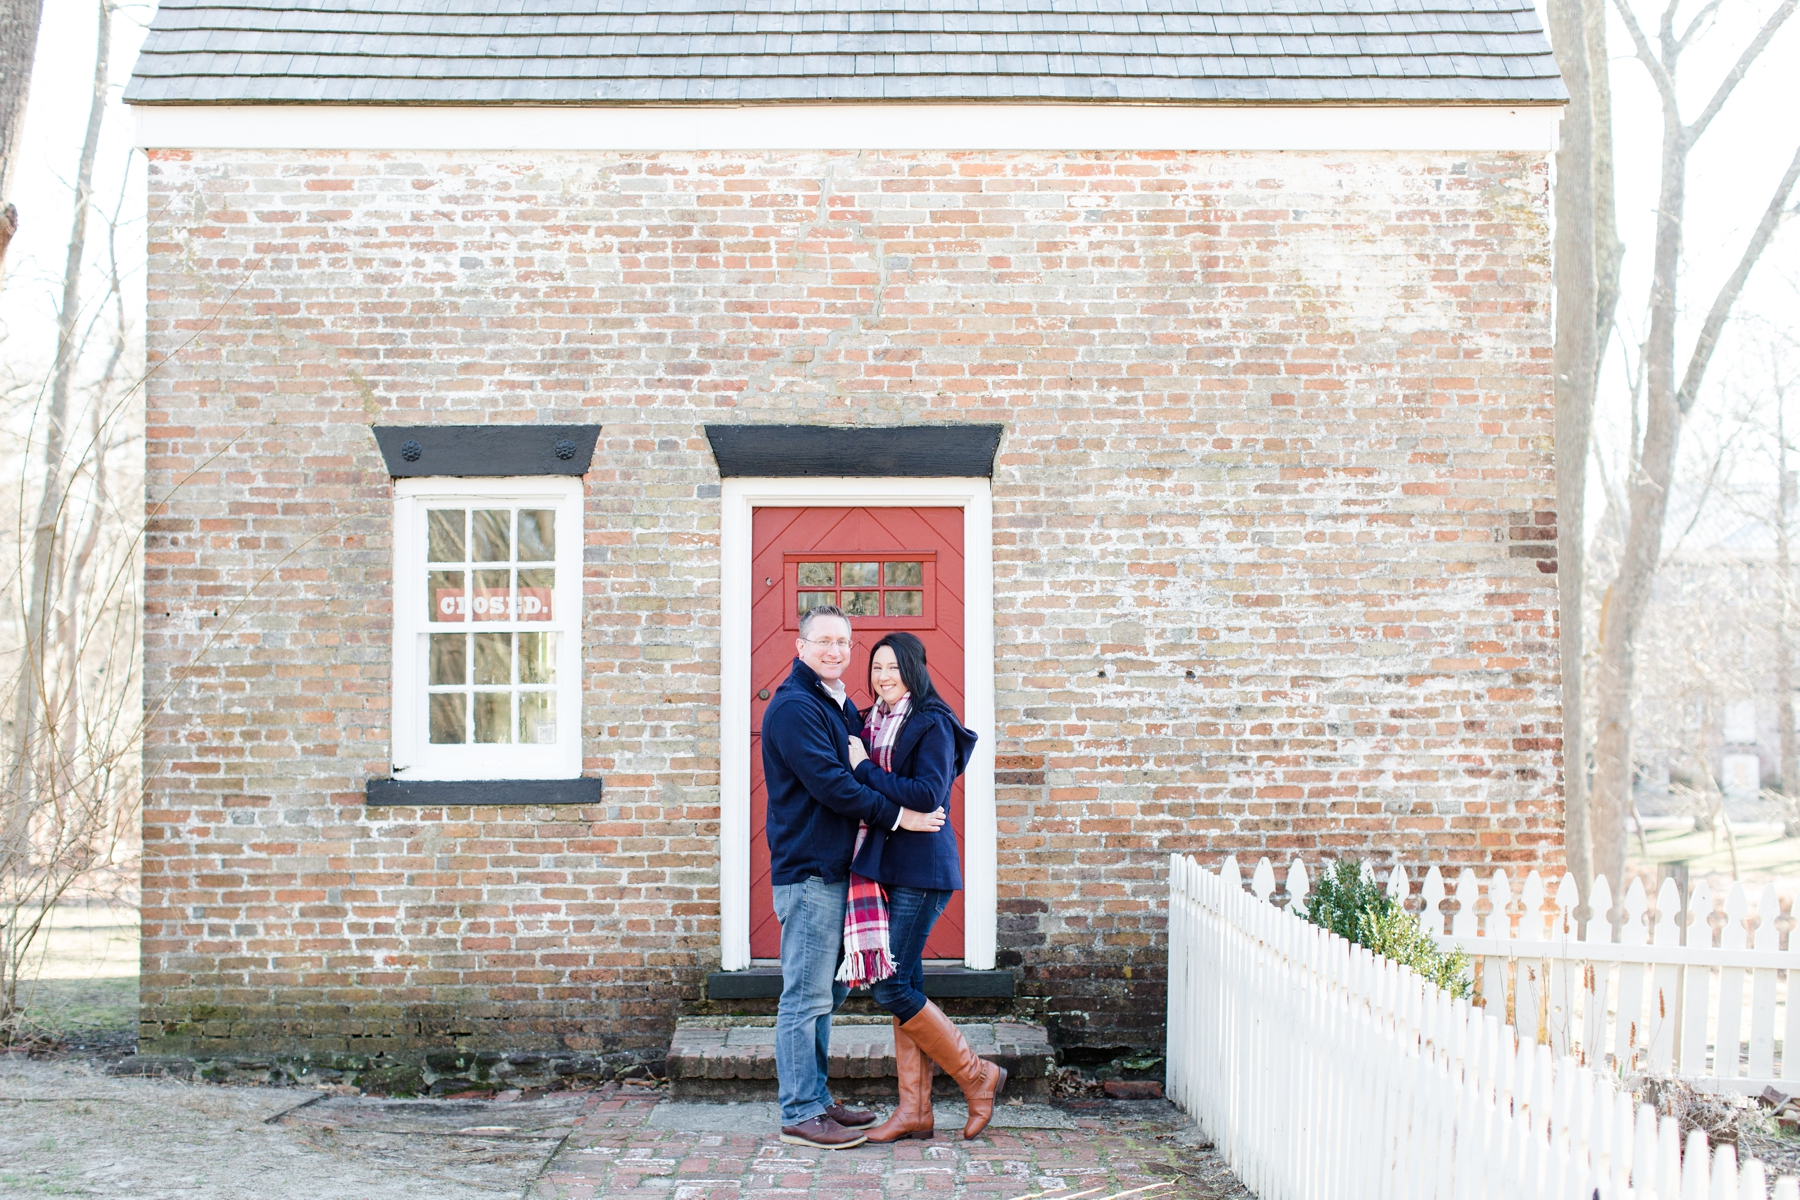 Kristi + Tim's Engagement Session at Allaire State Park